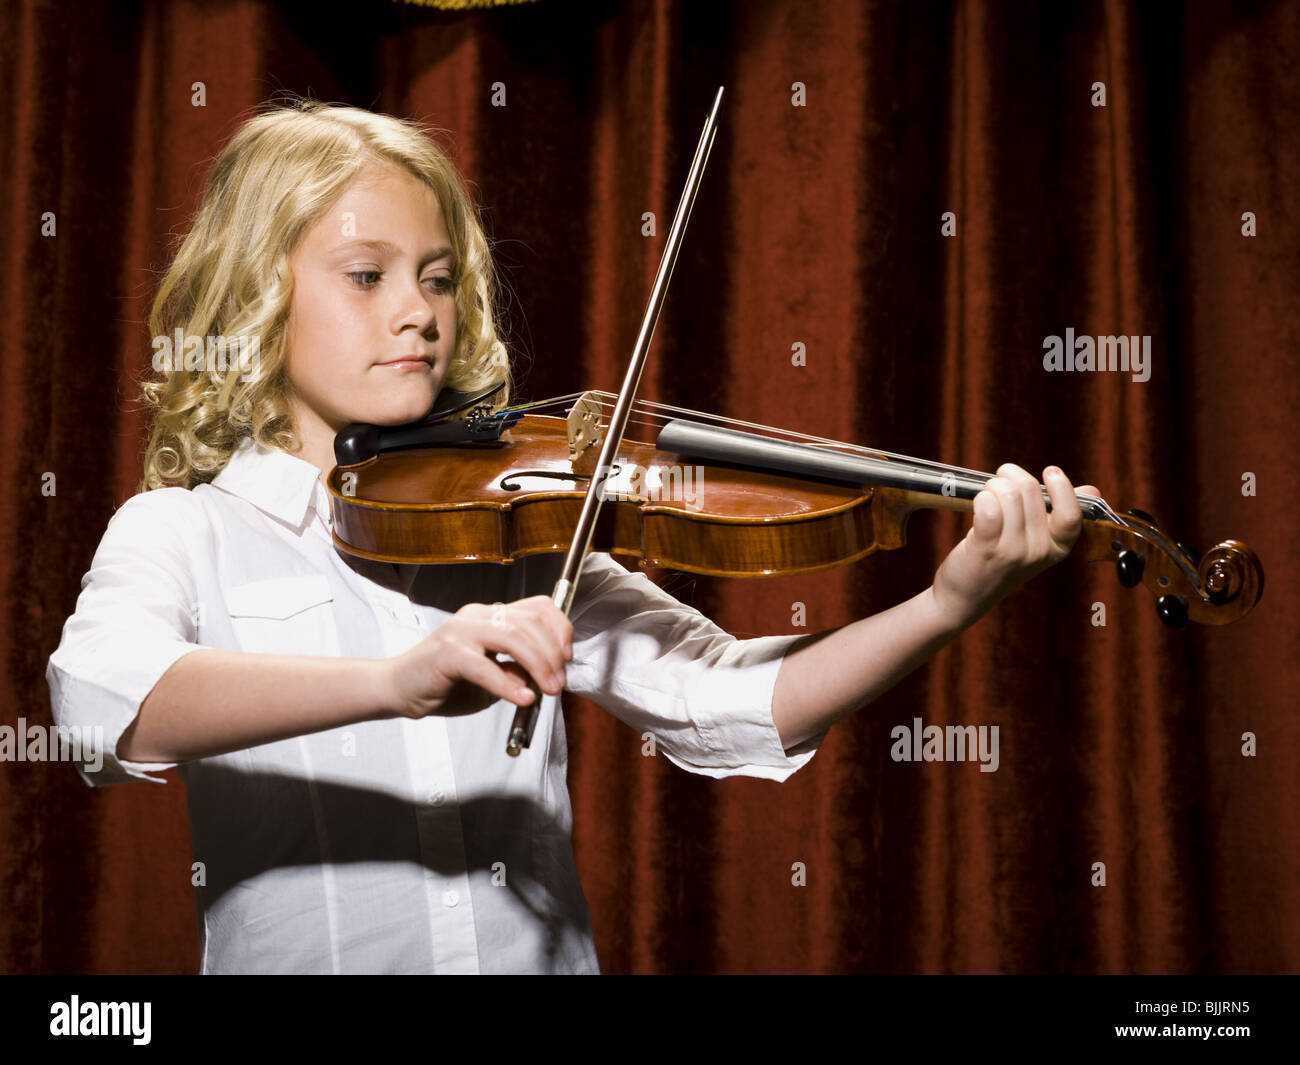 Girl Playing Violin On Stage Stock Photo Royalty Free